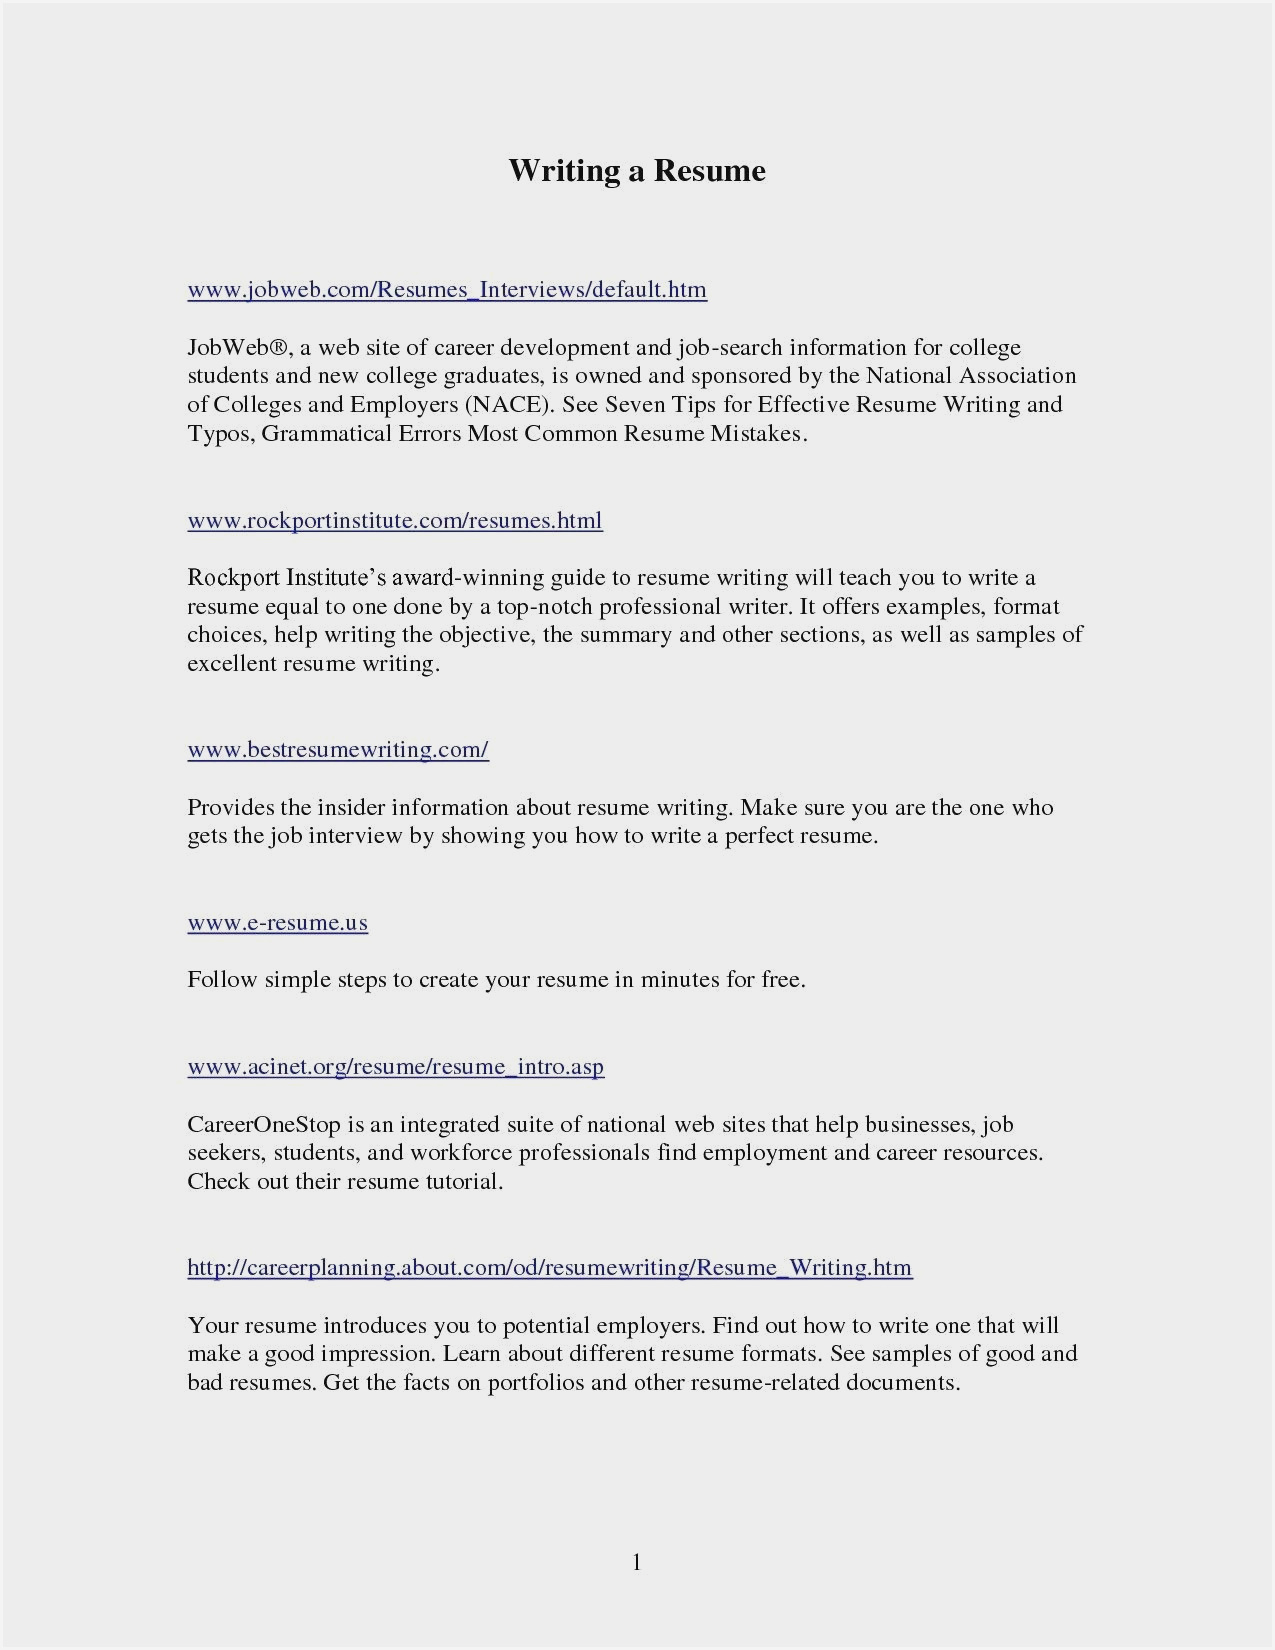 free resume searches for employers sample search examples team leader show types of Resume Free Resume Search For Employers